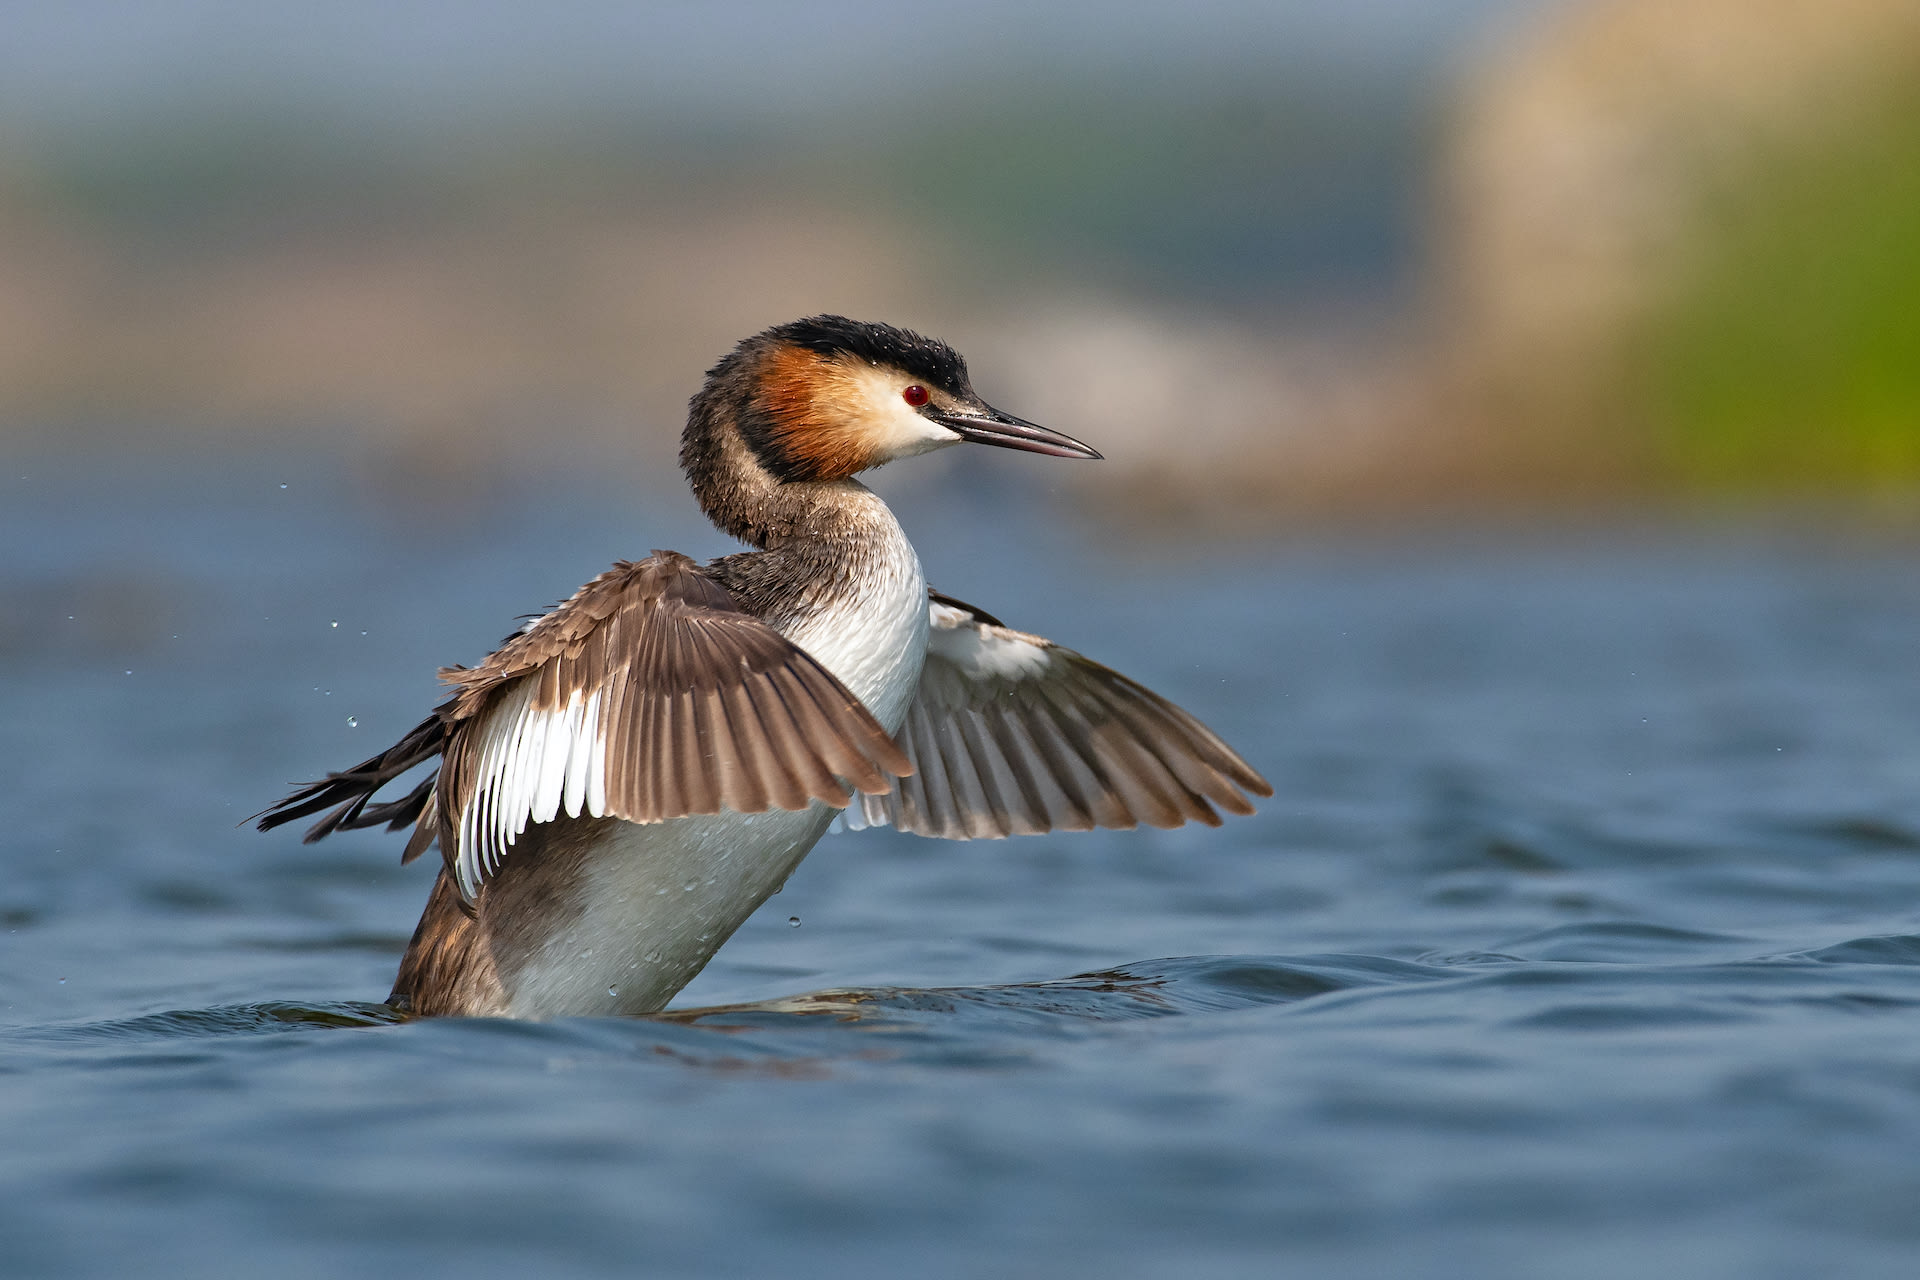 gujarat-jamnagar-great-crested-grebe-flapping-wings-in-water